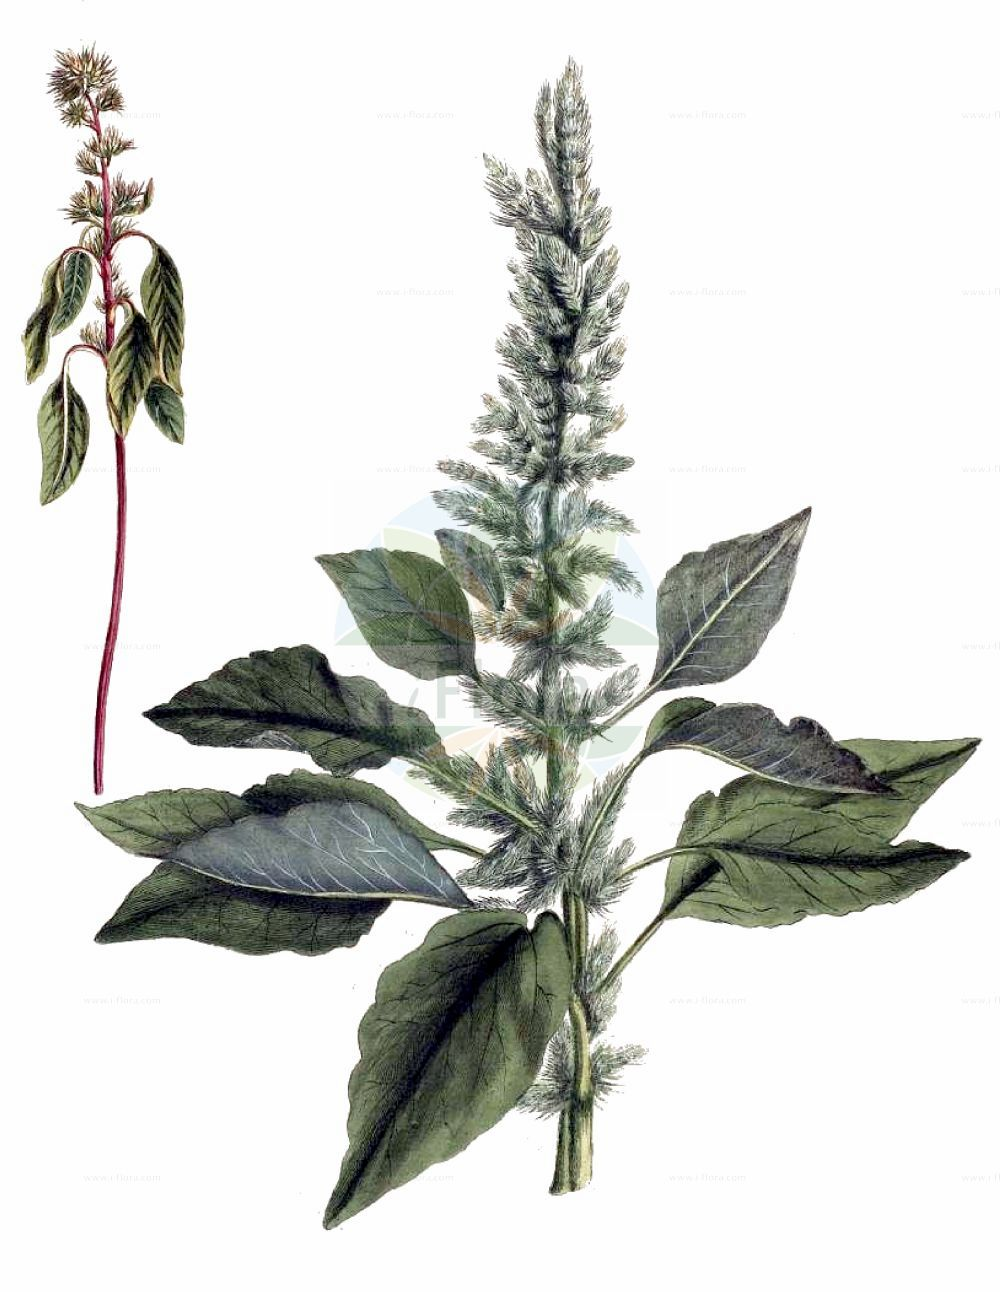 Historische Abbildung von Amaranthus retroflexus (Zurueckgekruemmter Fuchsschwanz - Common Amaranth). Das Bild zeigt Blatt, Bluete, Frucht und Same. ---- Historical Drawing of Amaranthus retroflexus (Zurueckgekruemmter Fuchsschwanz - Common Amaranth).The image is showing leaf, flower, fruit and seed.(Amaranthus retroflexus,Zurueckgekruemmter Fuchsschwanz,Common Amaranth,Amaranthus retroflexus,Amaranthus strictus,Galliaria retroflexa,Zurueckgekruemmter Fuchsschwanz,Zurueckgekruemmter Amarant,Common Amaranth,Careless Weed,Pigweed,Redroot,Redroot Amaranth,Redroot Pigweed,Slender Pigweed,Wild Amaranth,Amaranthus,Fuchsschwanz,Pigweed,Amaranthaceae,Fuchsschwanzgewaechse,Pigweed family,Blatt,Bluete,Frucht,Same,leaf,flower,fruit,seed,von Willdenow (1790))